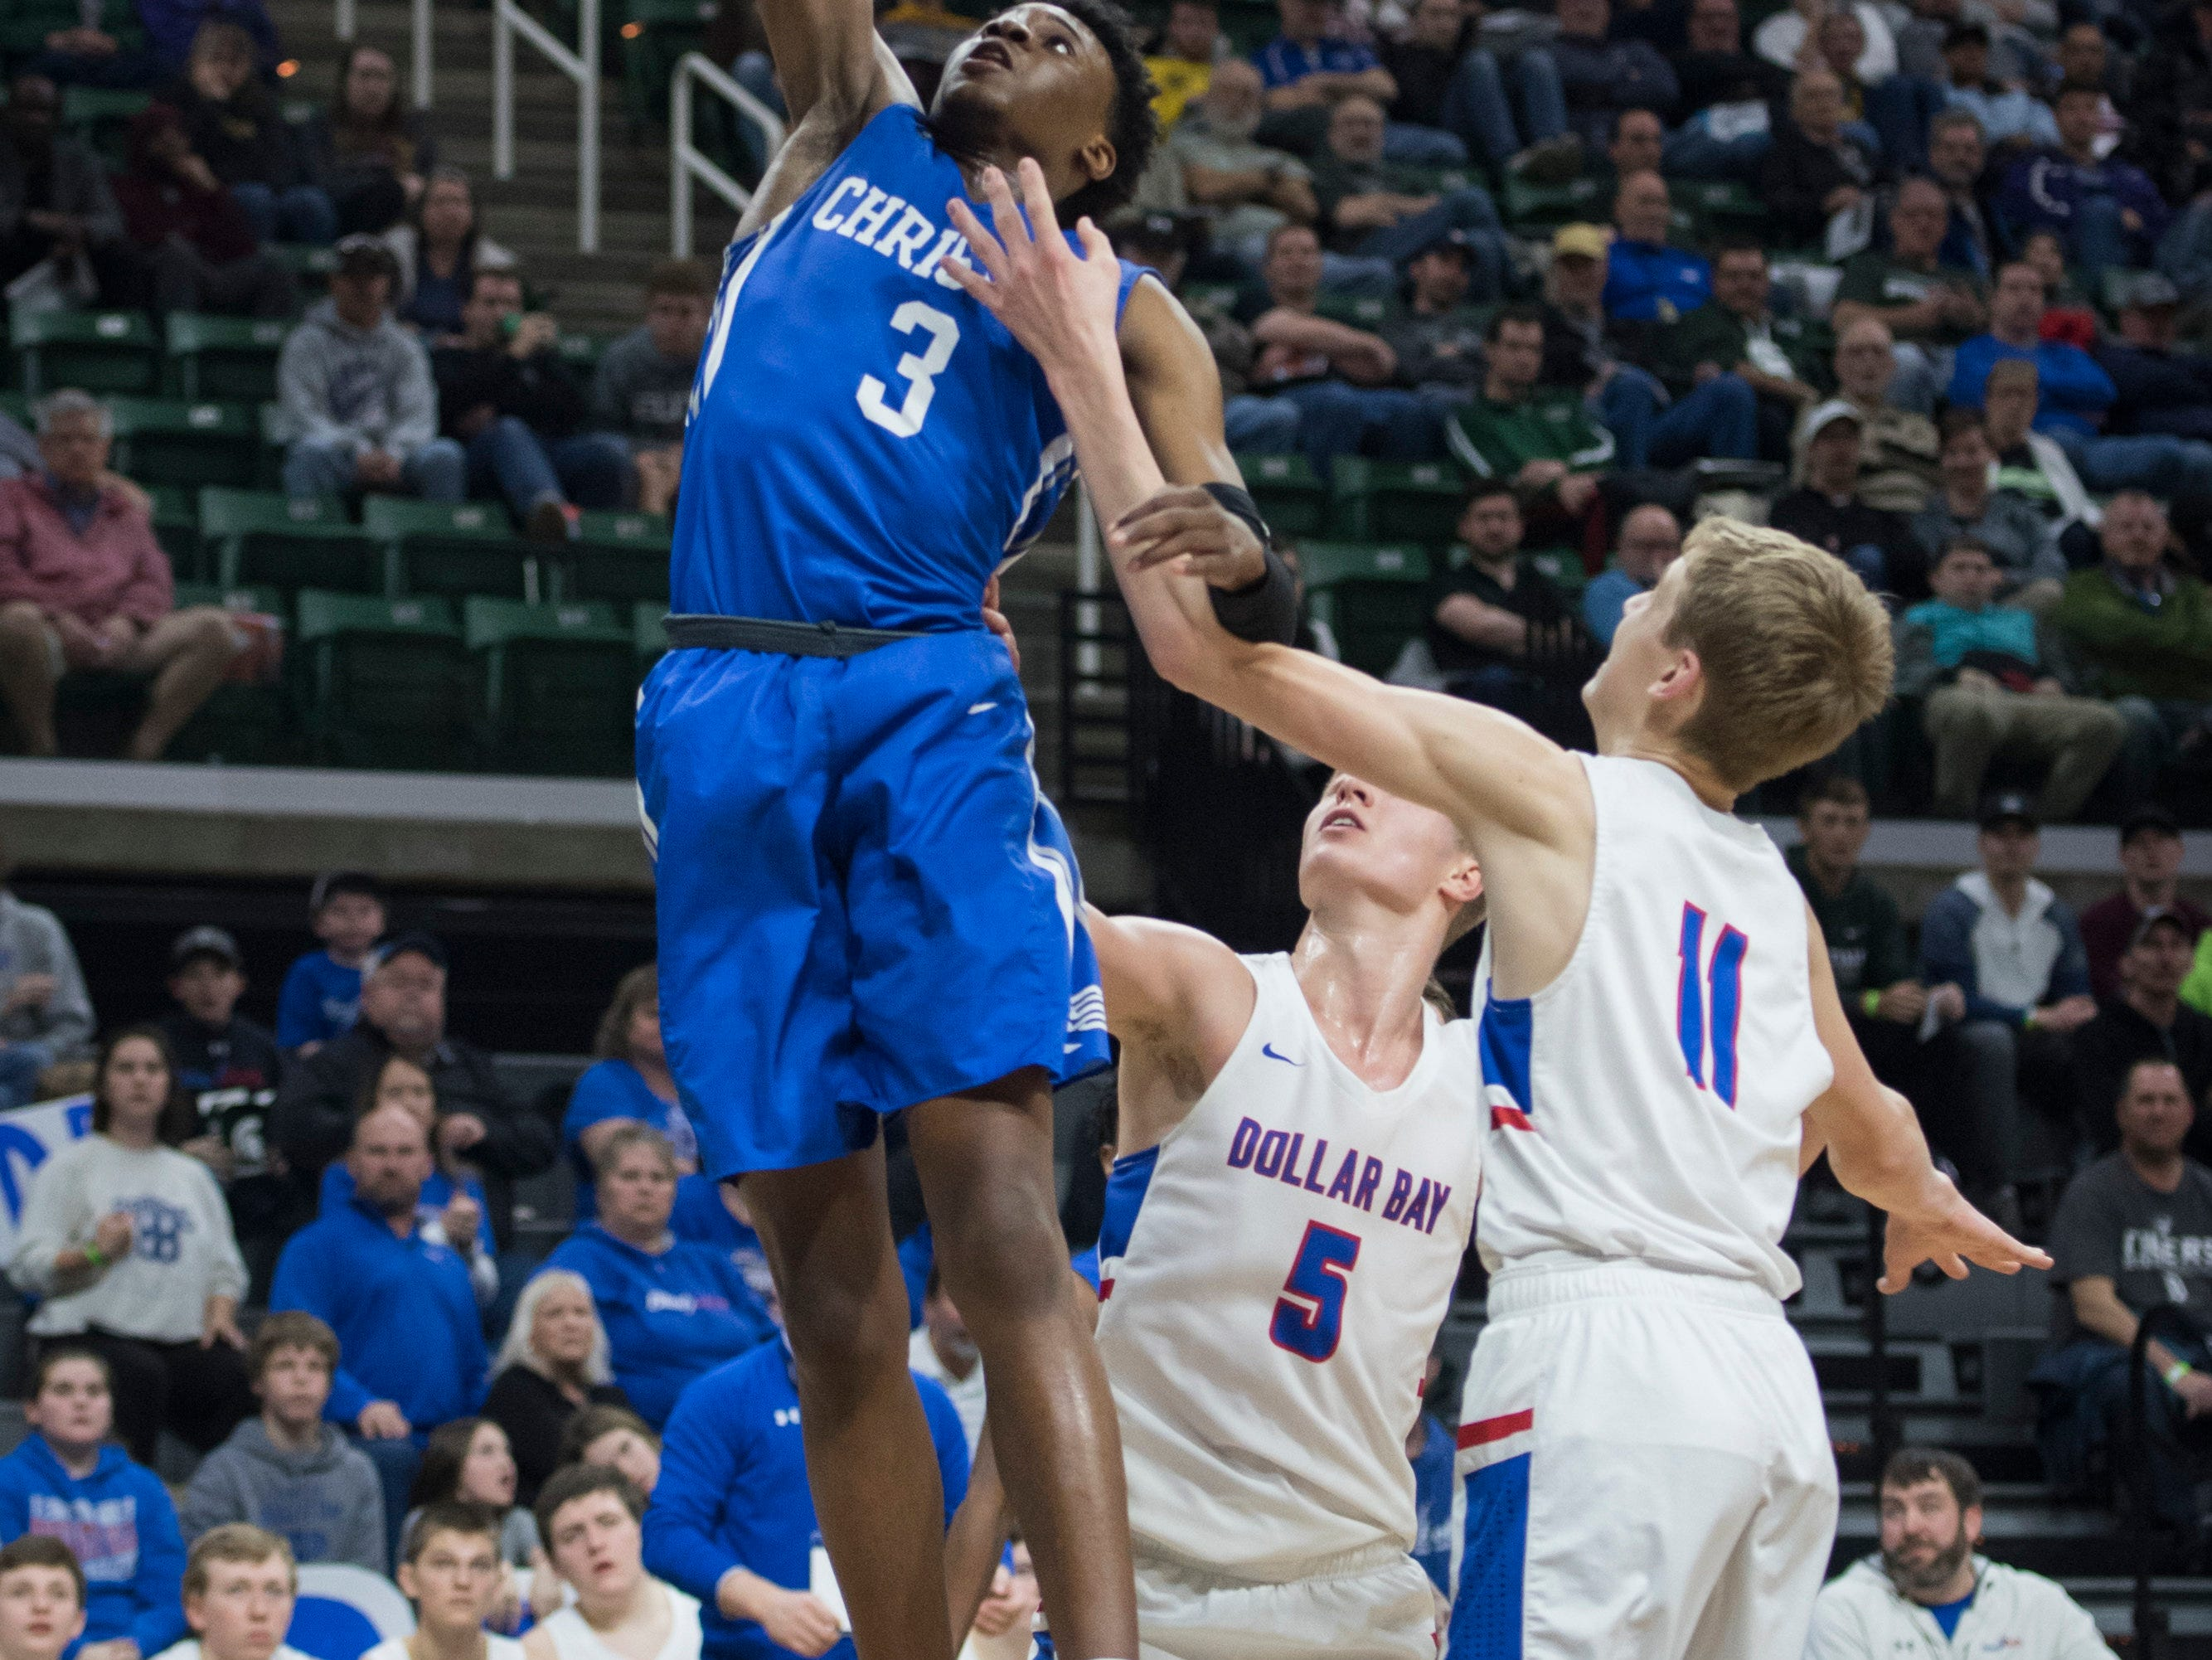 Southfield ChristianÕs DaÕJion Humphrey shoots the ball in the first half. *** Southfield Christian versed Dollar Bay in the MHSAA Div. 4 semifinals at Breslin Center in East Lansing on Thursday, March 14, 2019. (Nic Antaya, Special to The Detroit News)